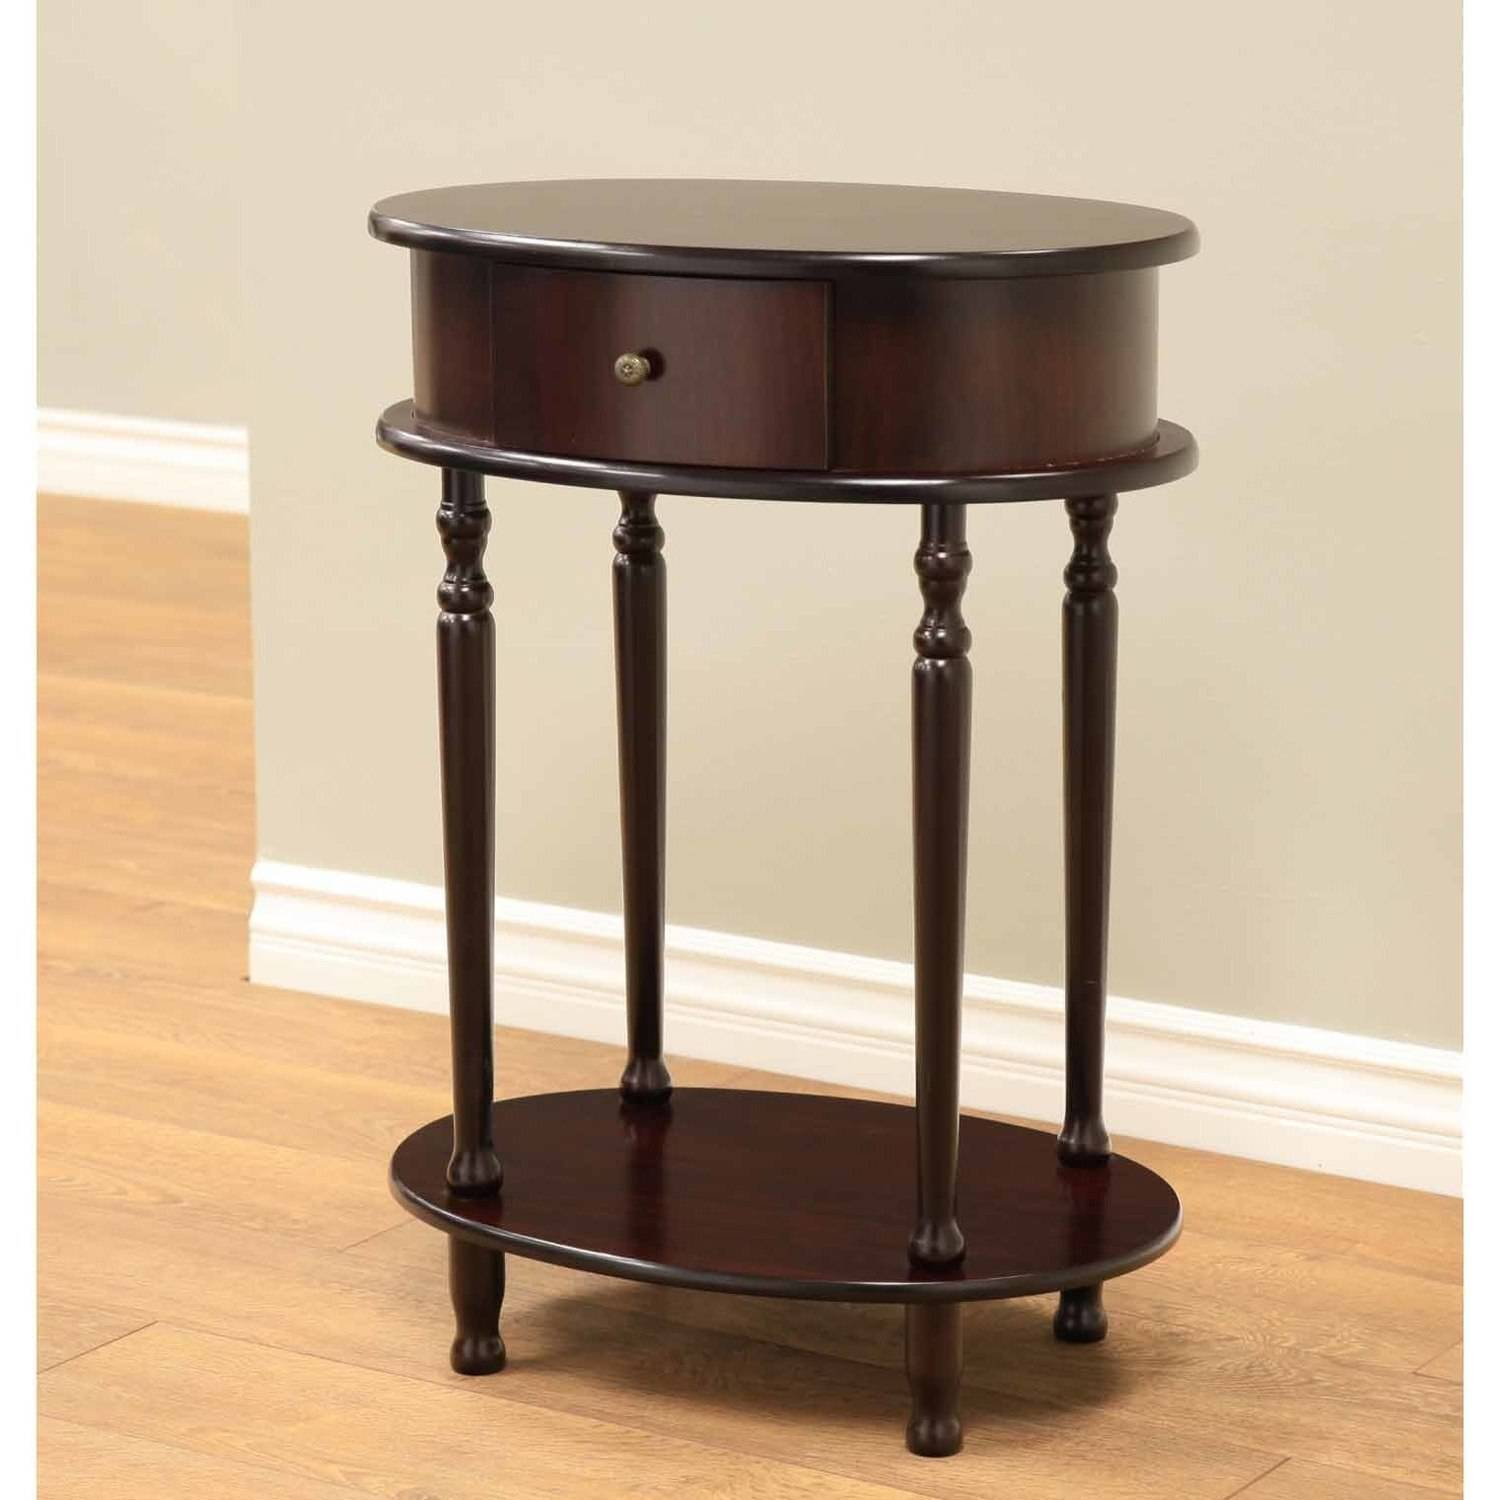 Home Craft Oval End Table